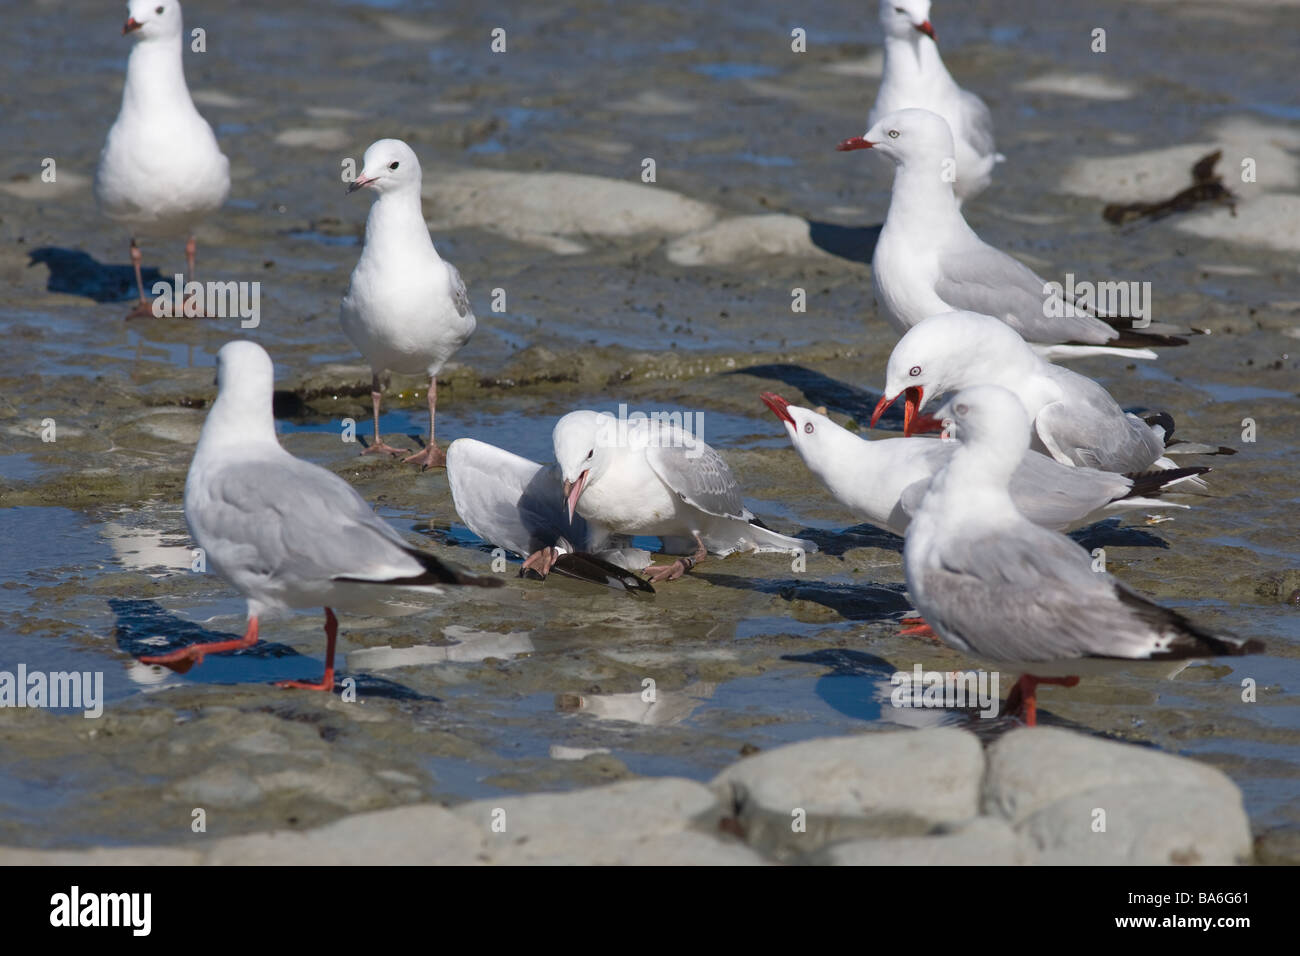 Red billed Gulls Larus novaehollandiae or Silver Gull New Zealand - Stock Image